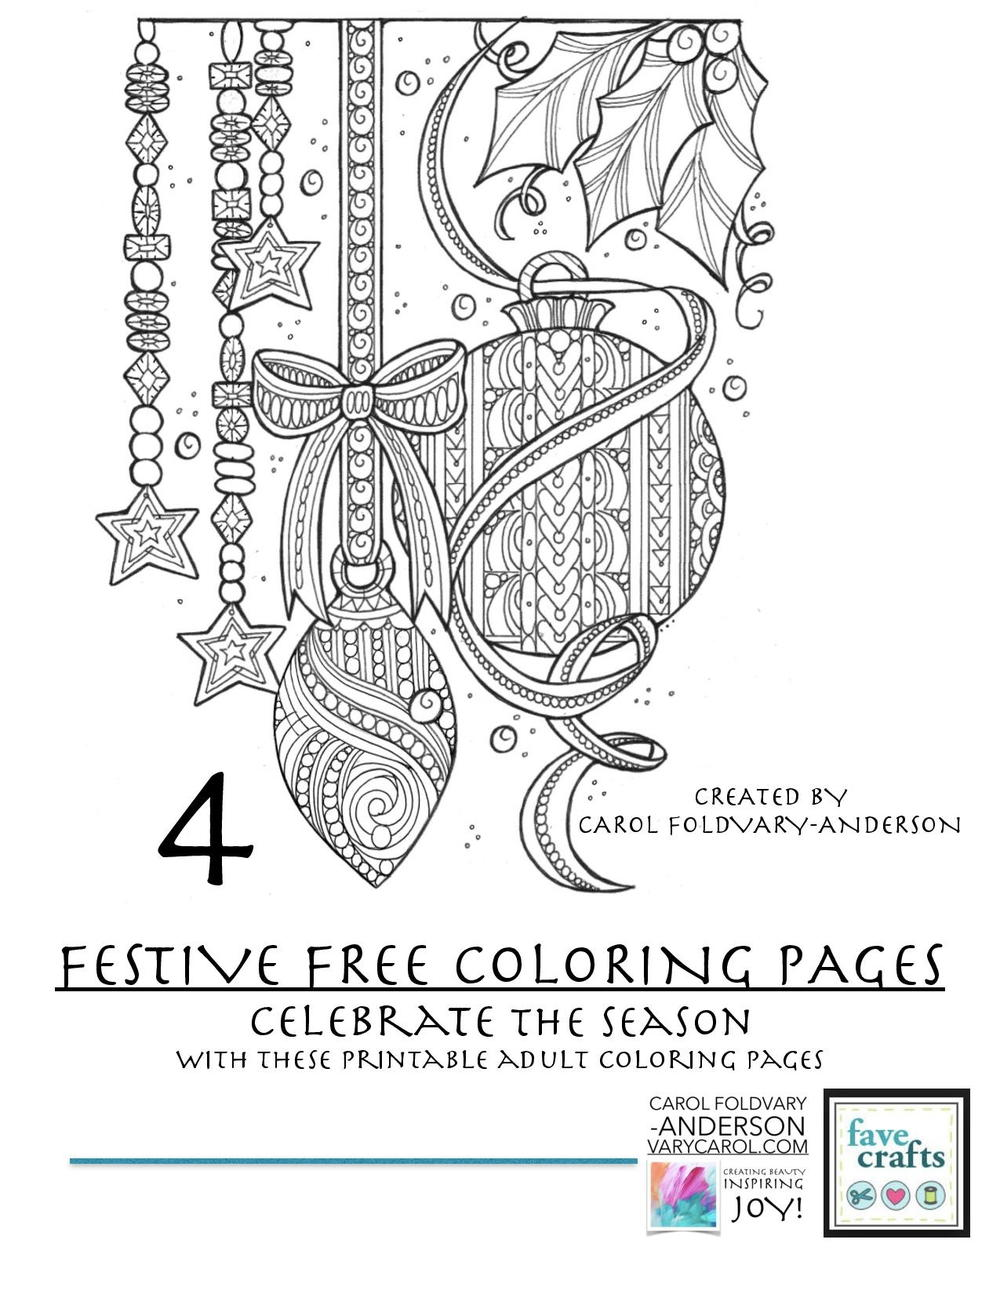 4 festive free holiday coloring pages for adults pdf favecrafts com